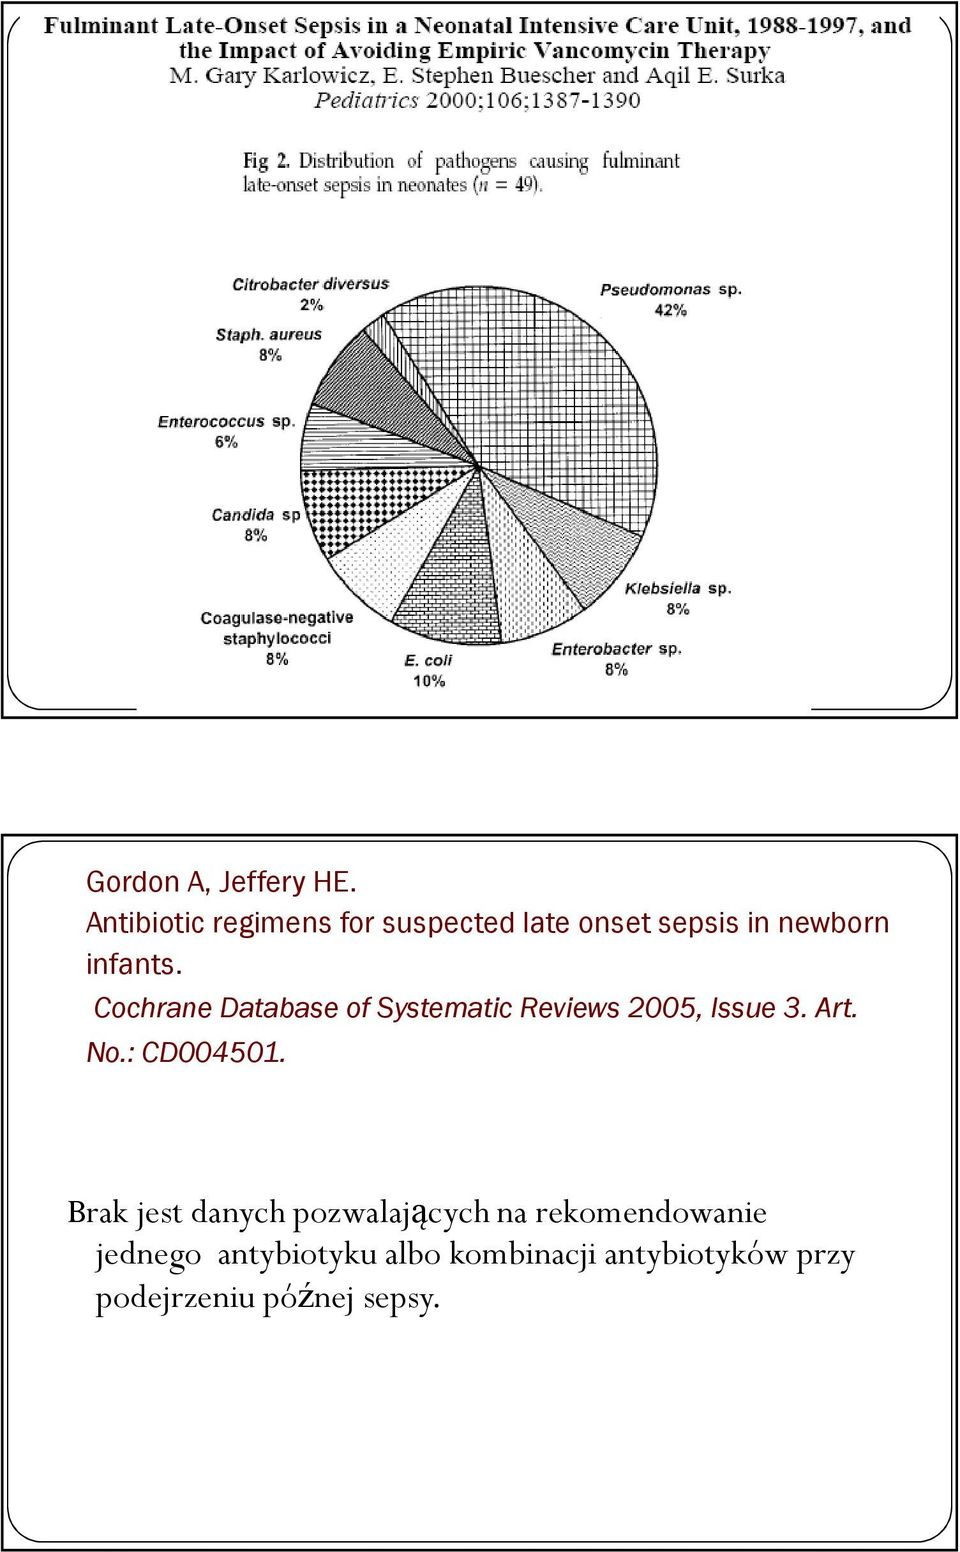 Cochrane Database of Systematic Reviews 2005, Issue 3. Art. No.: CD00450.